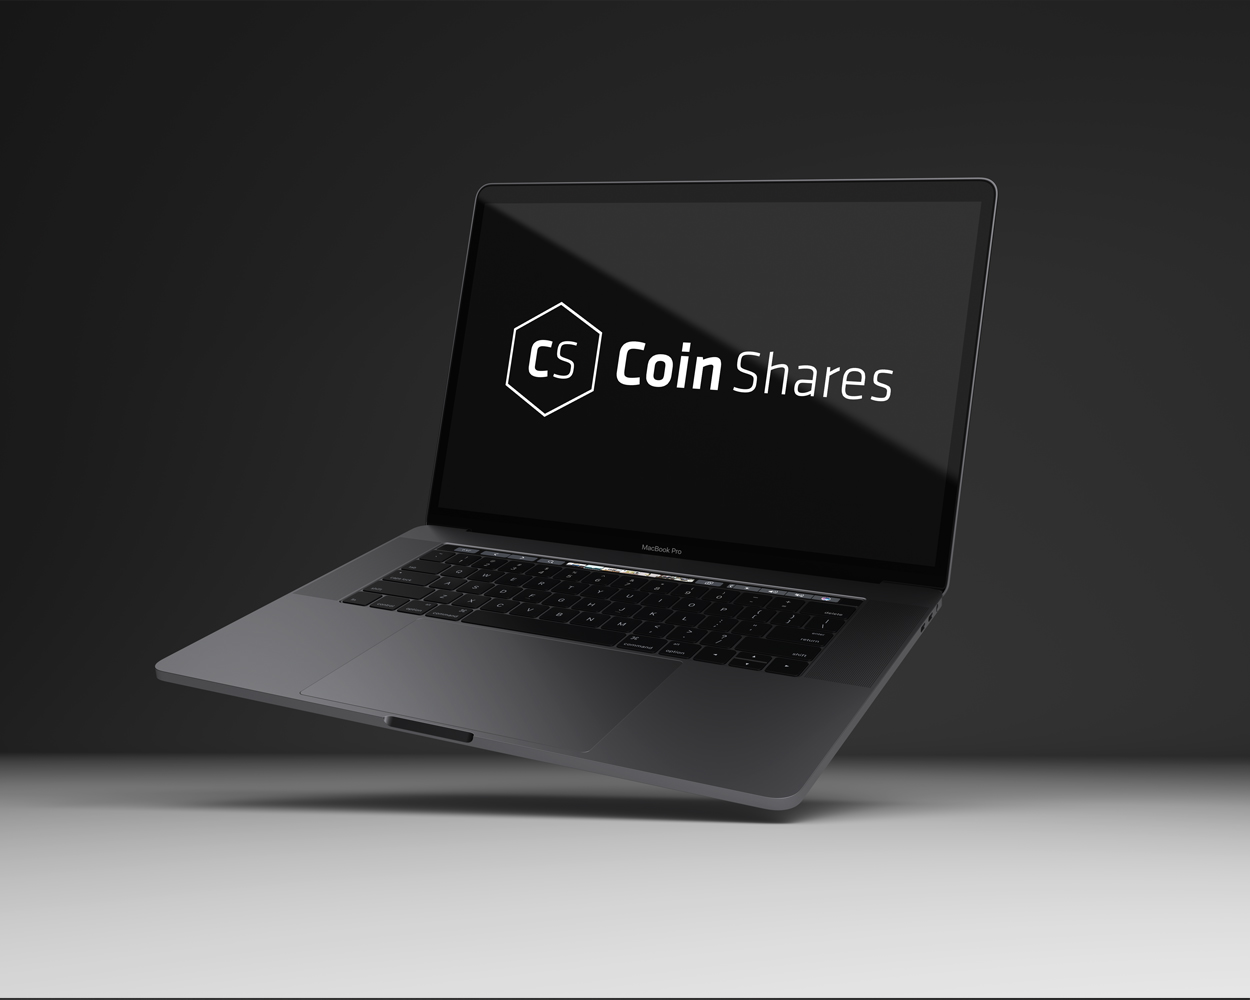 """Bitcoin Mining Network"" -Published by Coinshares - An investigation into the marginal cost to mint to new Bitcoin; the composition, efficiency consumption and electricity sources"